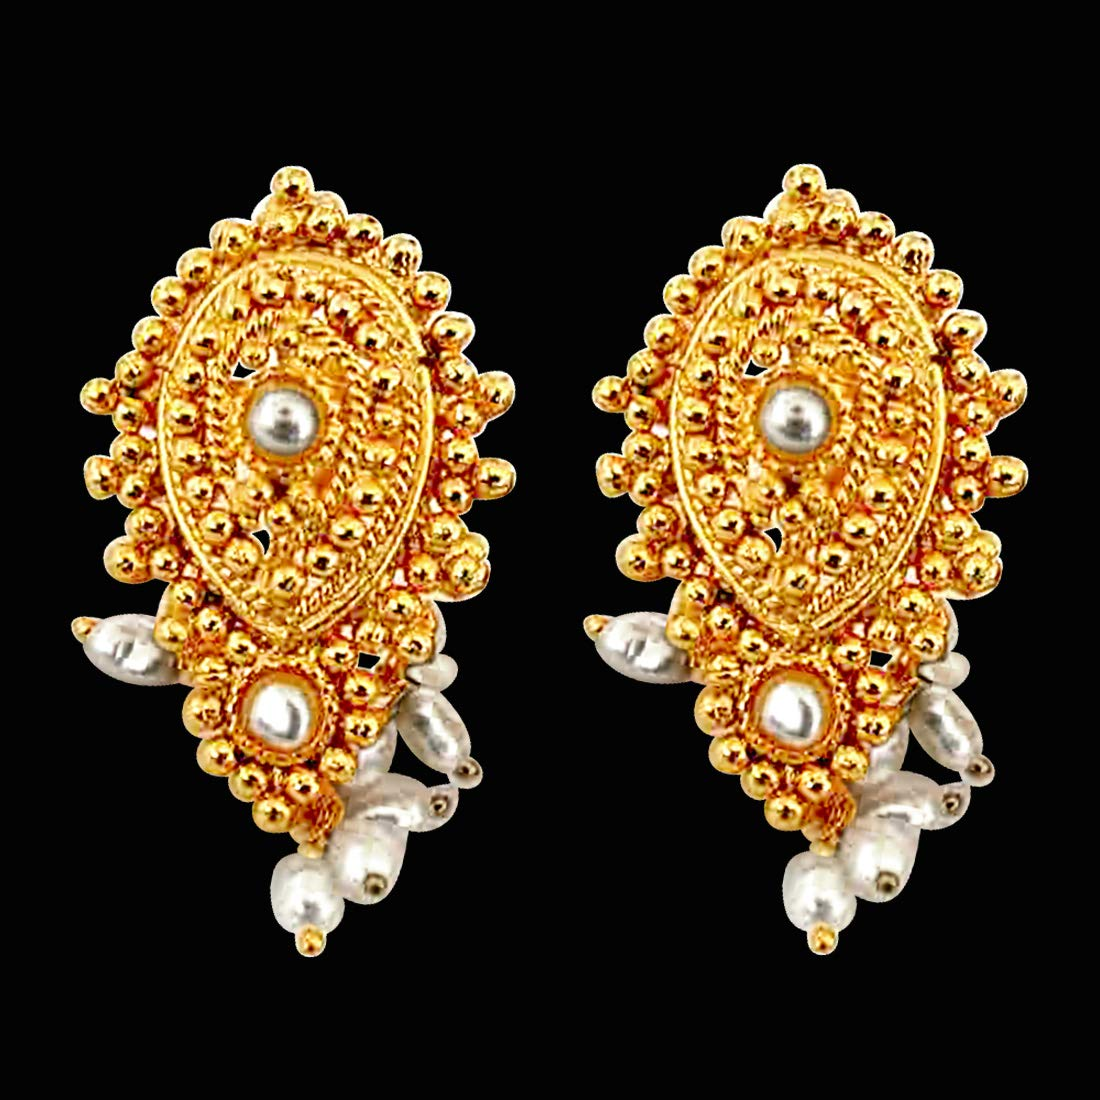 Mystifying Magnificent - Real Freshwater Pearl & Gold Plated Drop Shaped Earrings for Women (SE37)